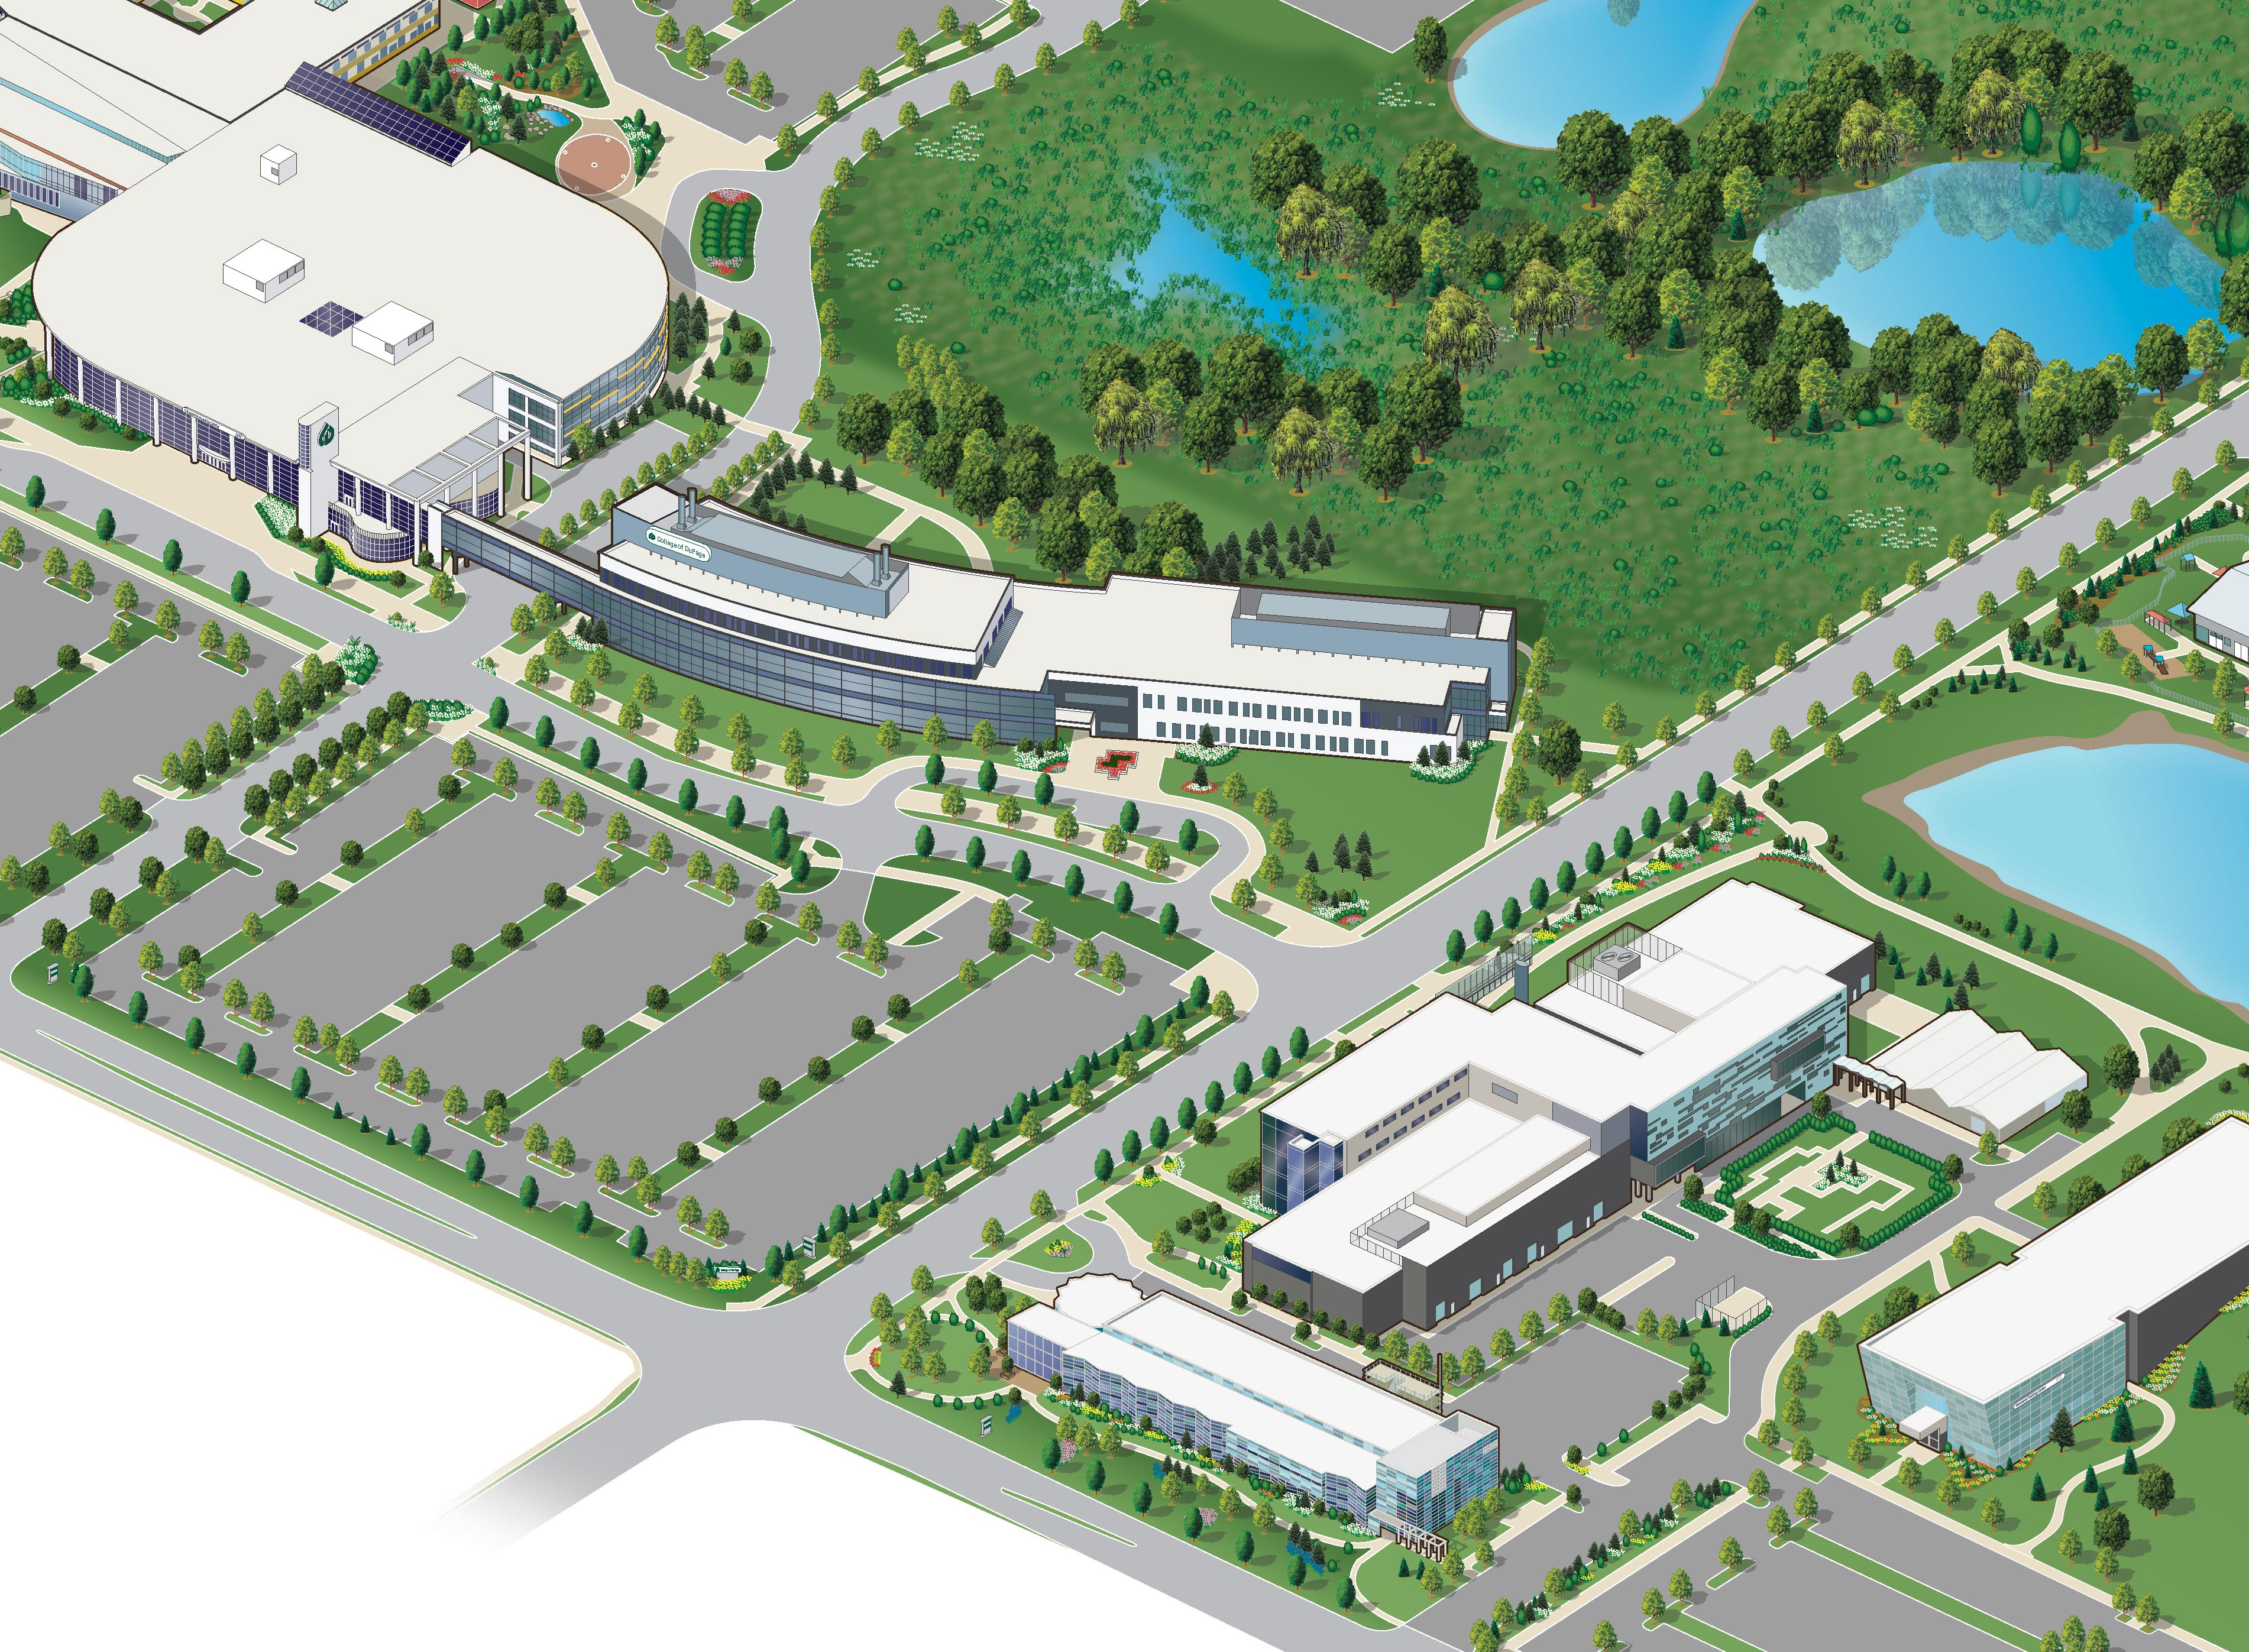 College Of Dupage Campus Map College of Dupage Illustrated Campus Map